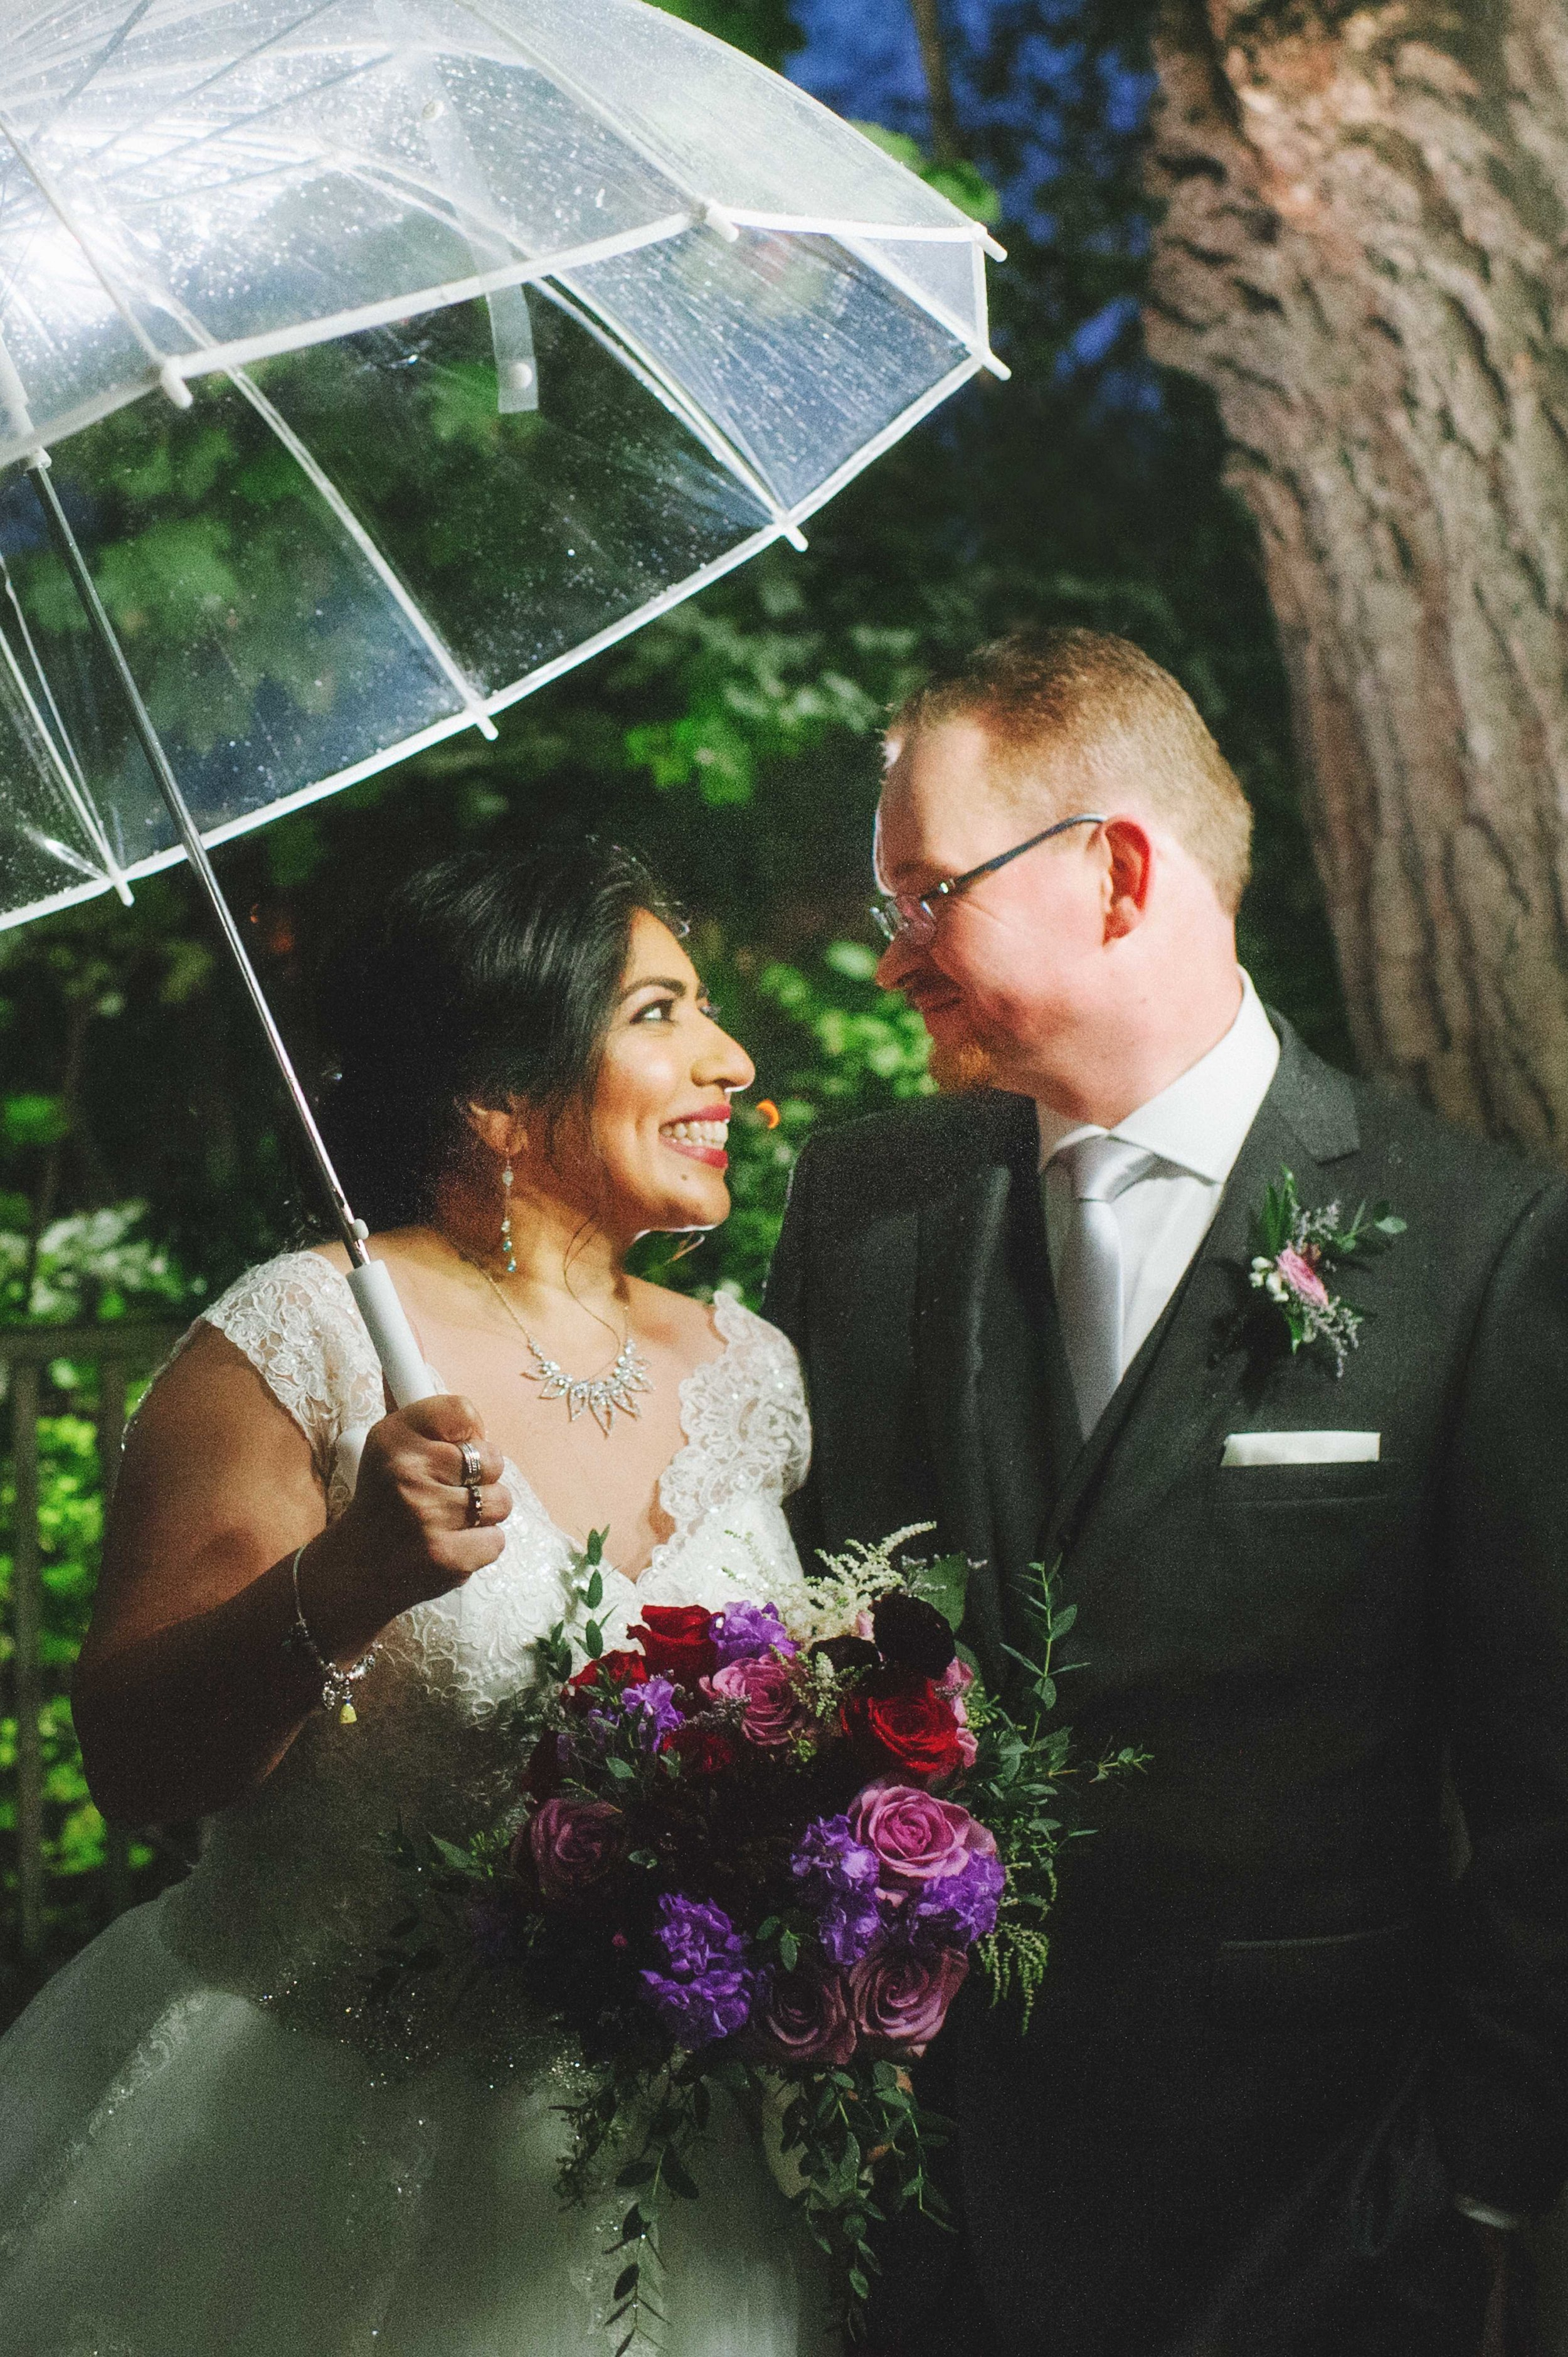 A Romantic Fairy Tale Wedding - Historia Wedding and Event Planning